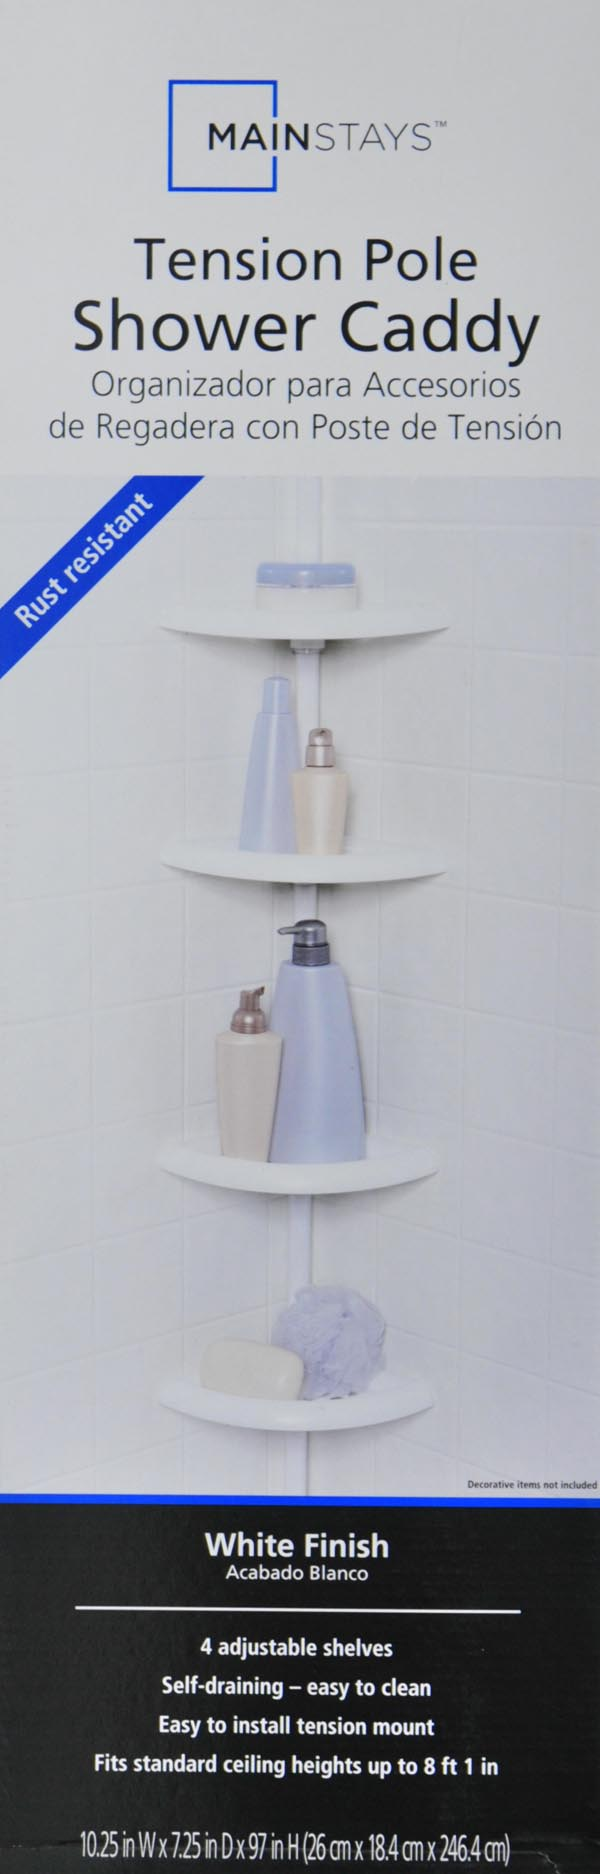 Mainstays 4 Tier Tub And Shower Tension Pole Caddy, White   Walmart.com